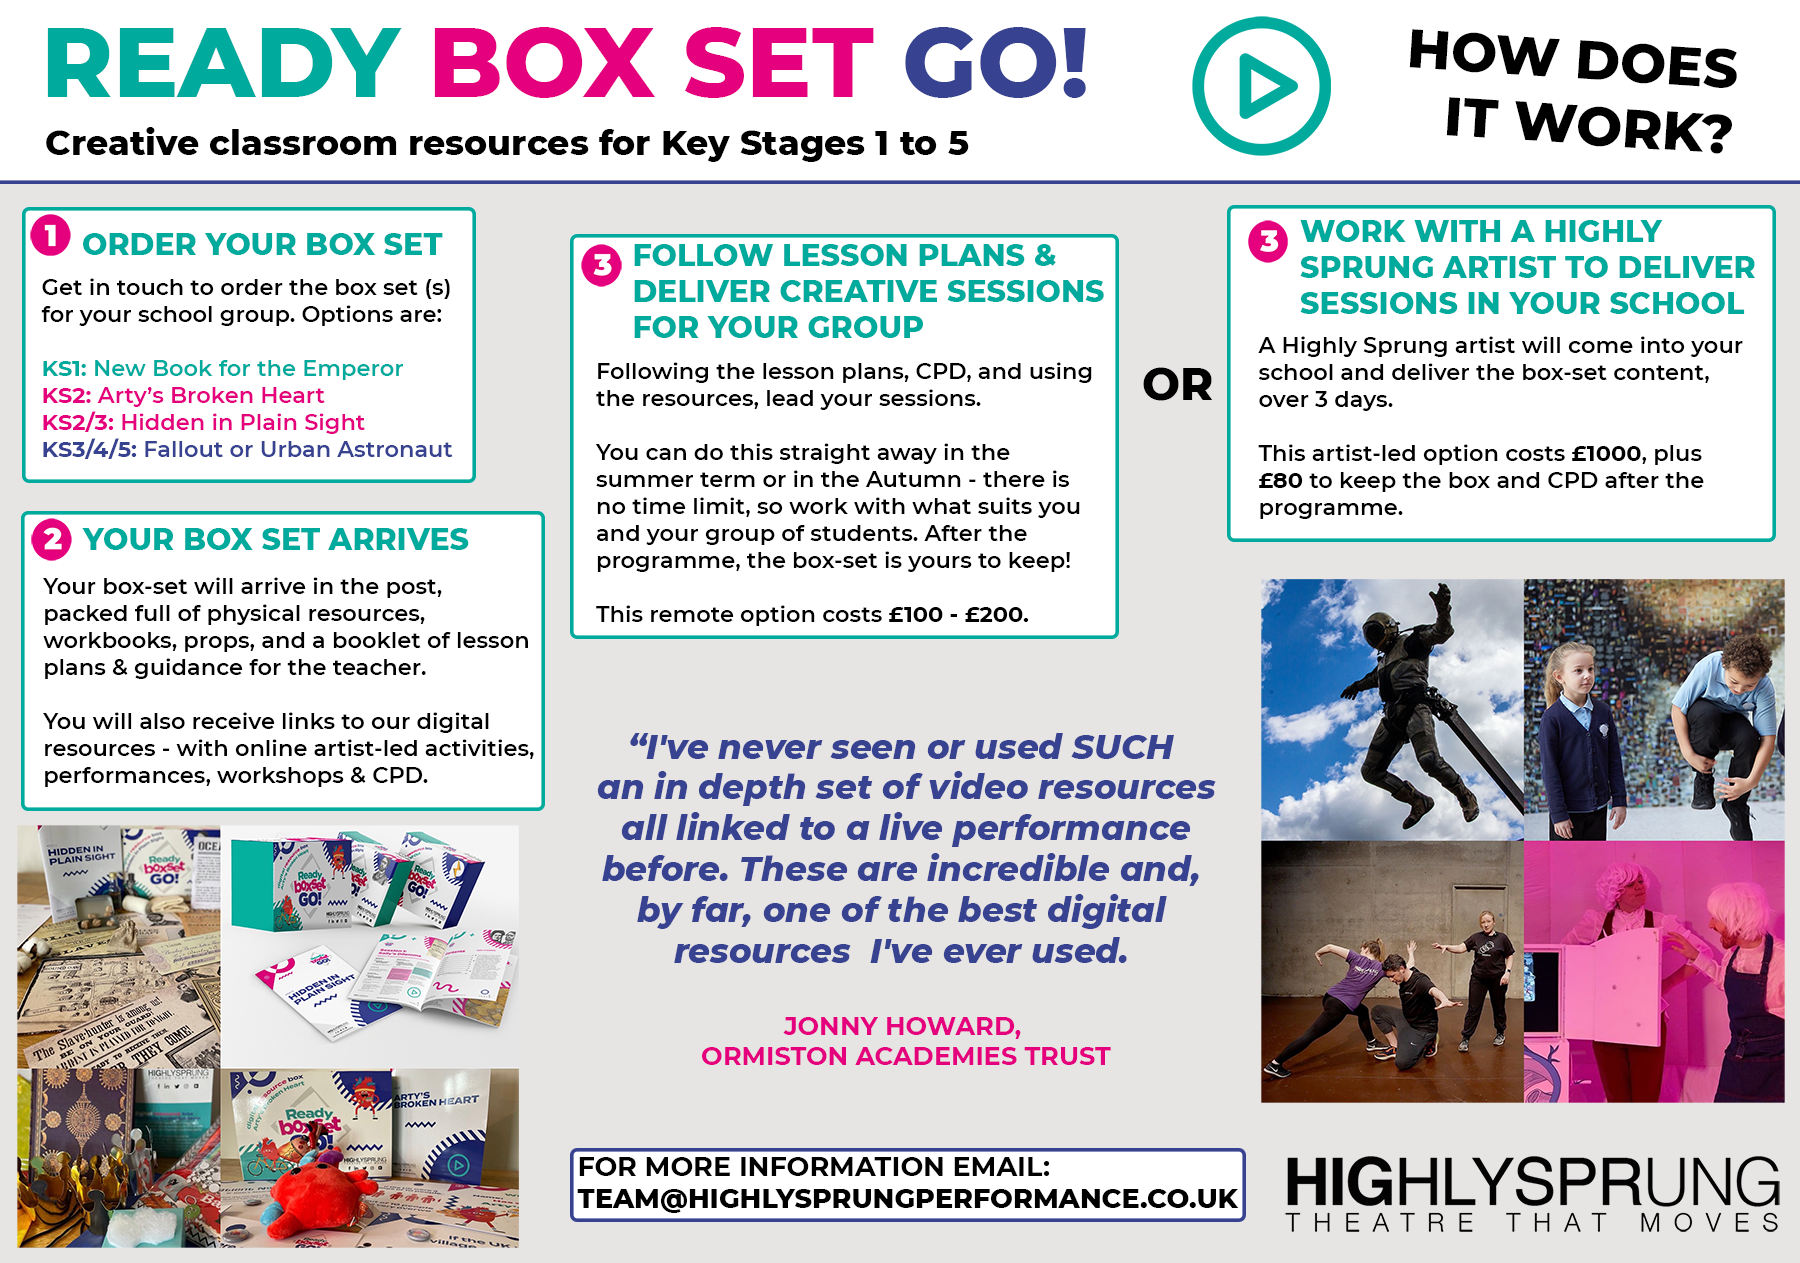 A text-filled infographic, showing how to use Ready Box Set Go. There are also photos of artists running workshops with young people.